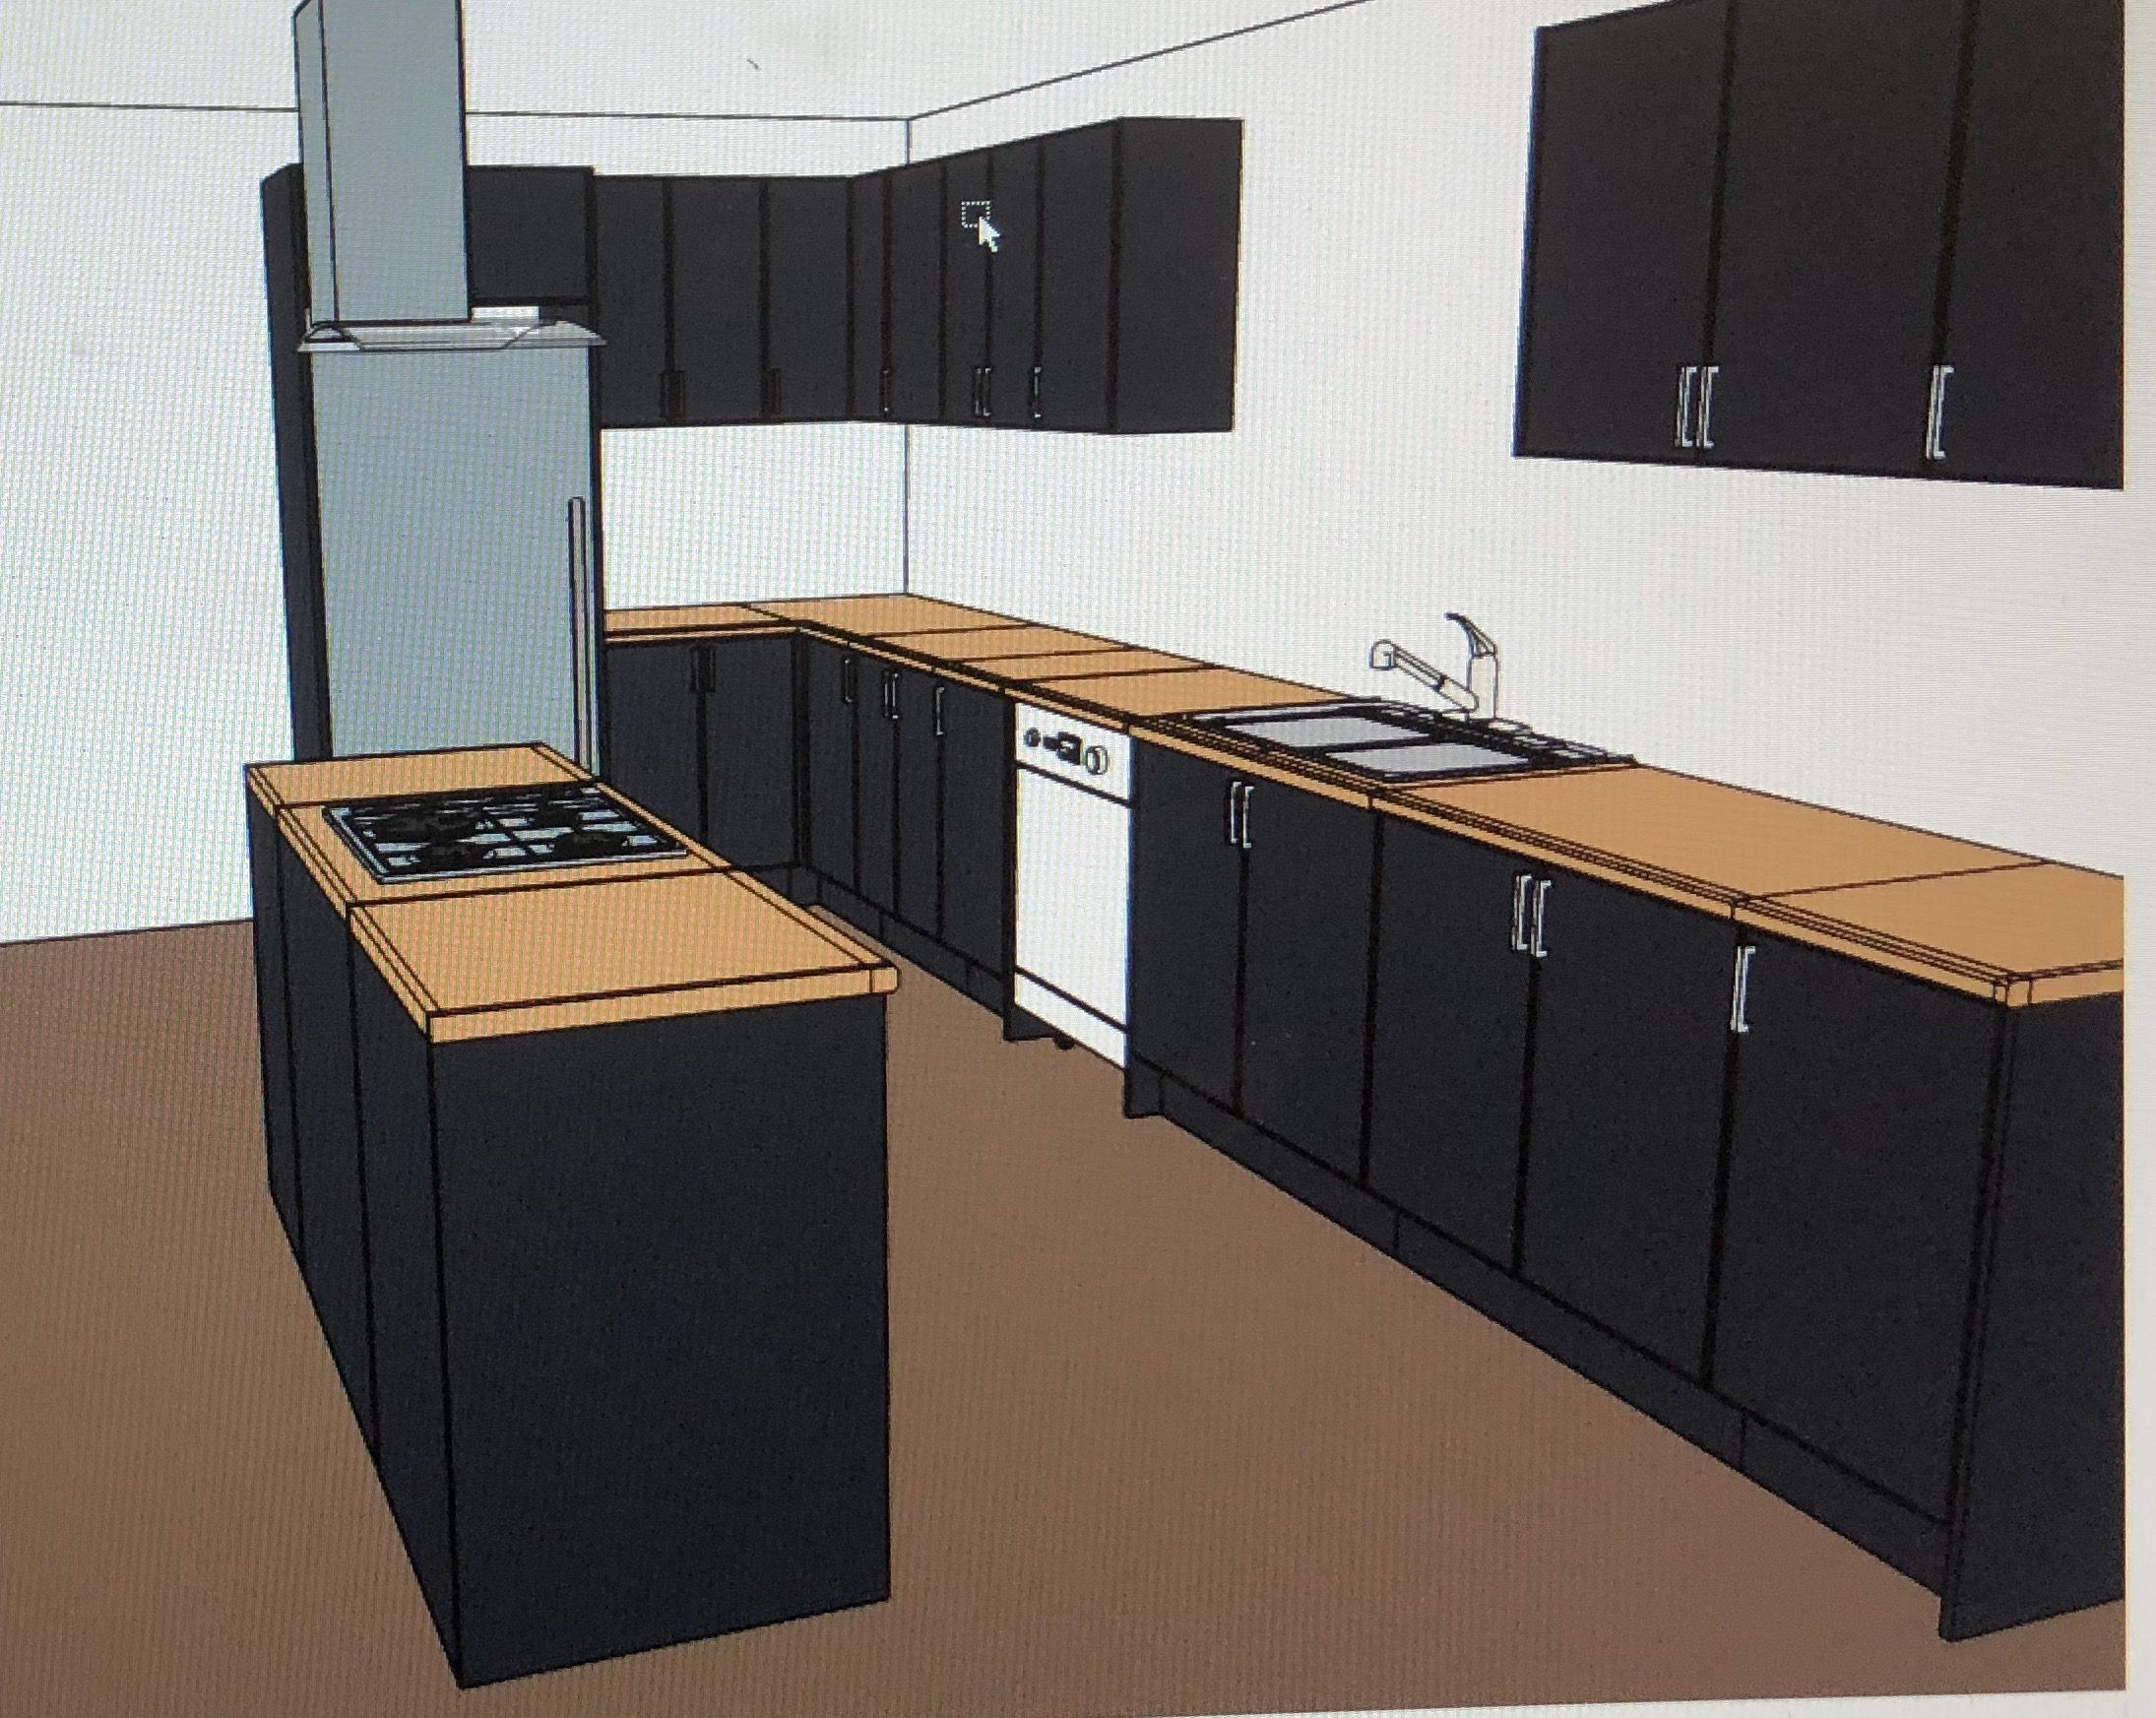 layout two kaboodle kitchen rendered view kitchen outdoor storage box outdoor storage on kaboodle kitchen microwave id=99738